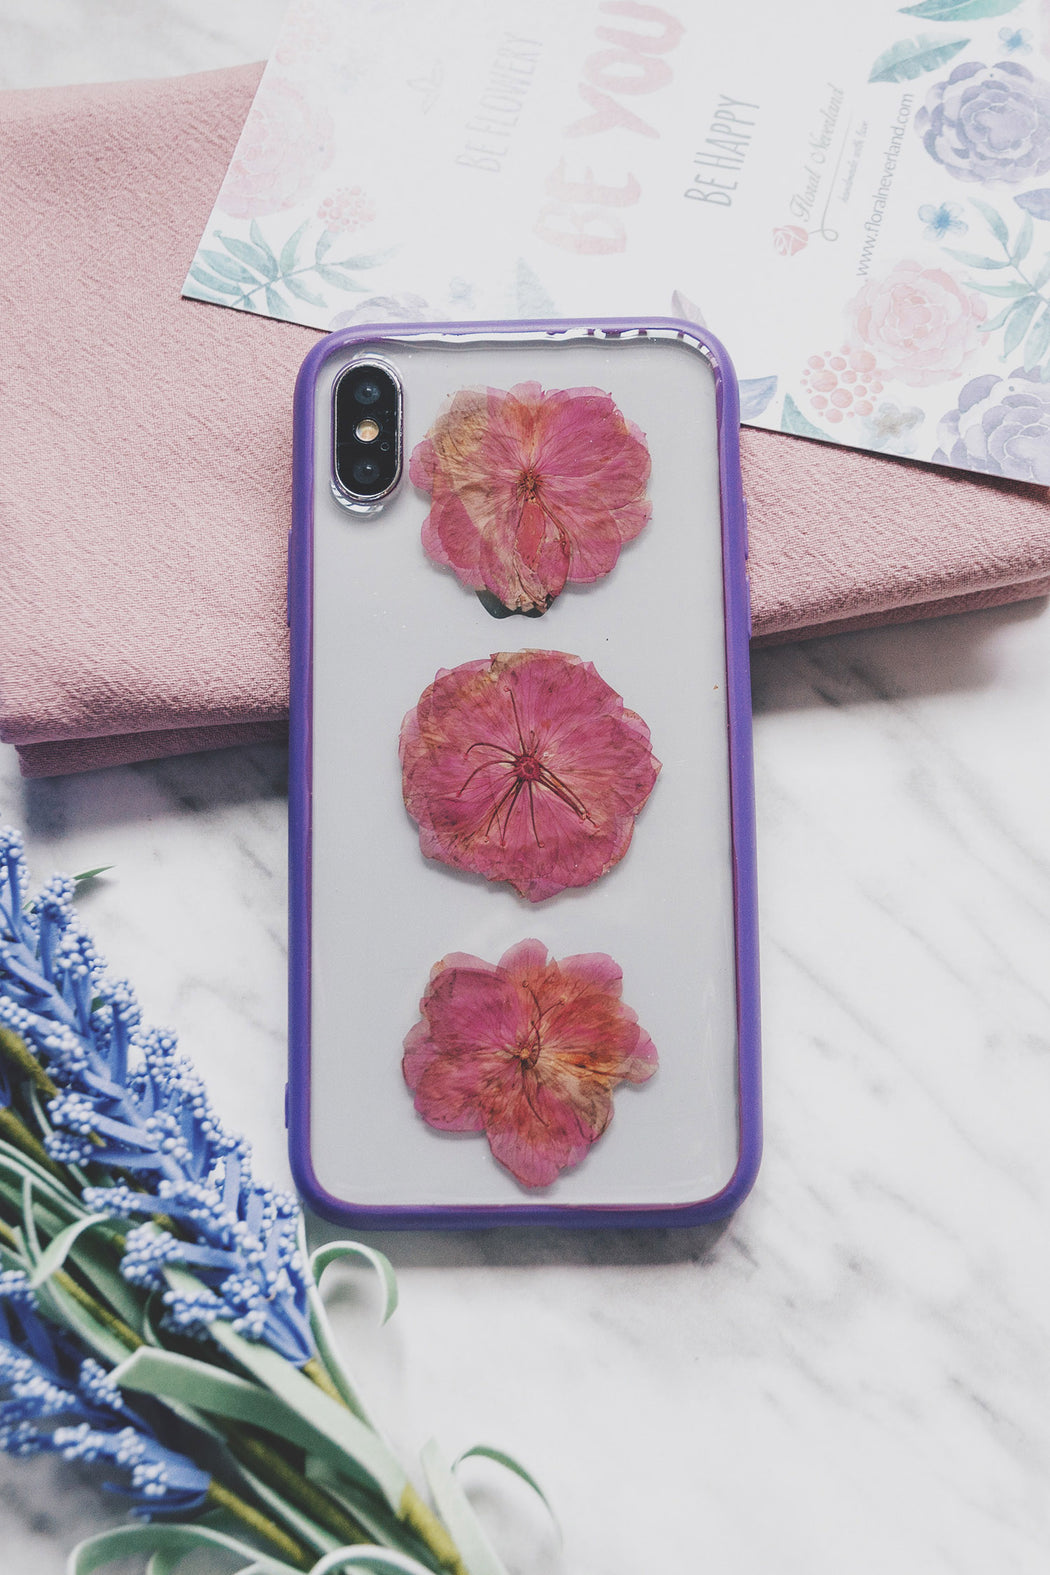 pressed cherry blossom flower cute protective floral iphone x xs bumper case magenta floral neverland floralfy